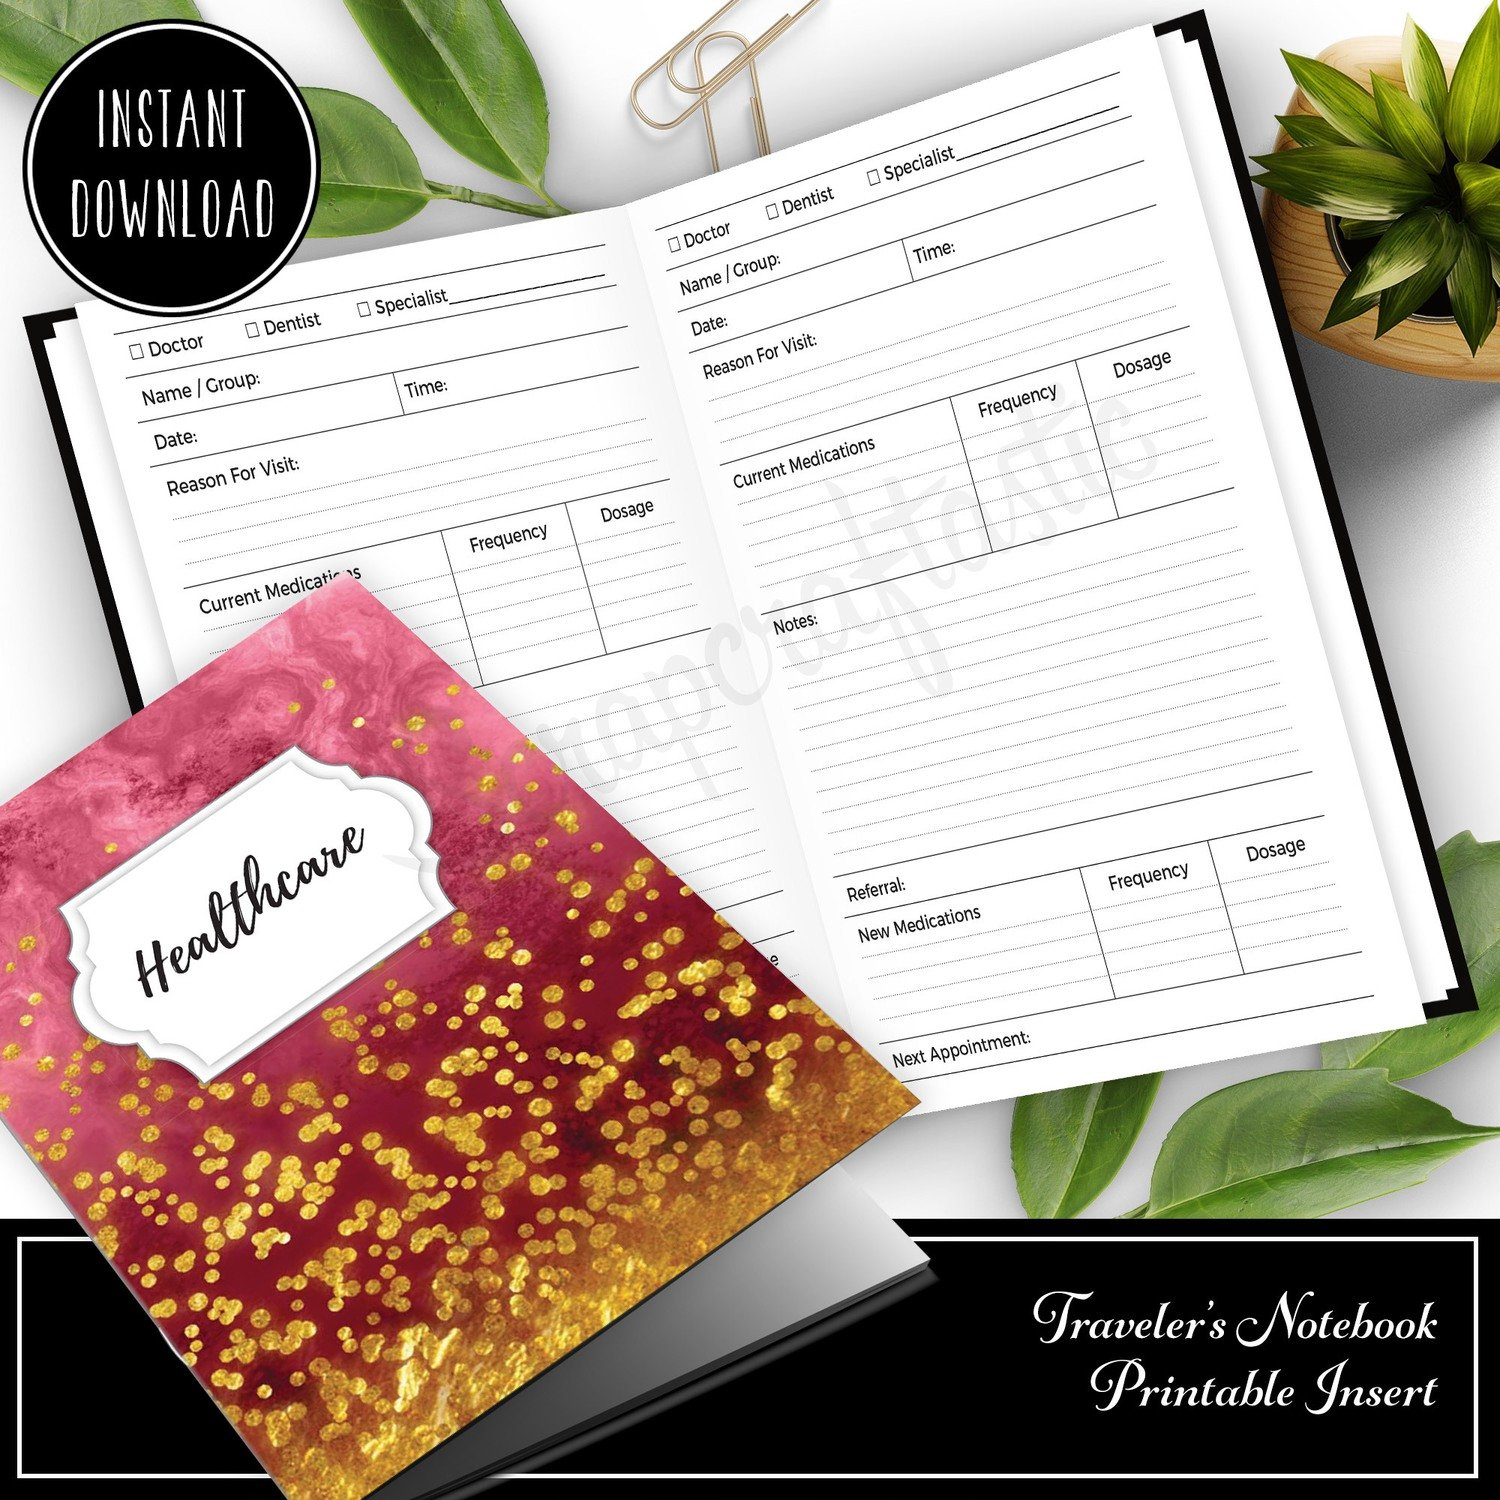 A6 TN - Healthcare Visit Log Traveler's Notebook Printable Insert